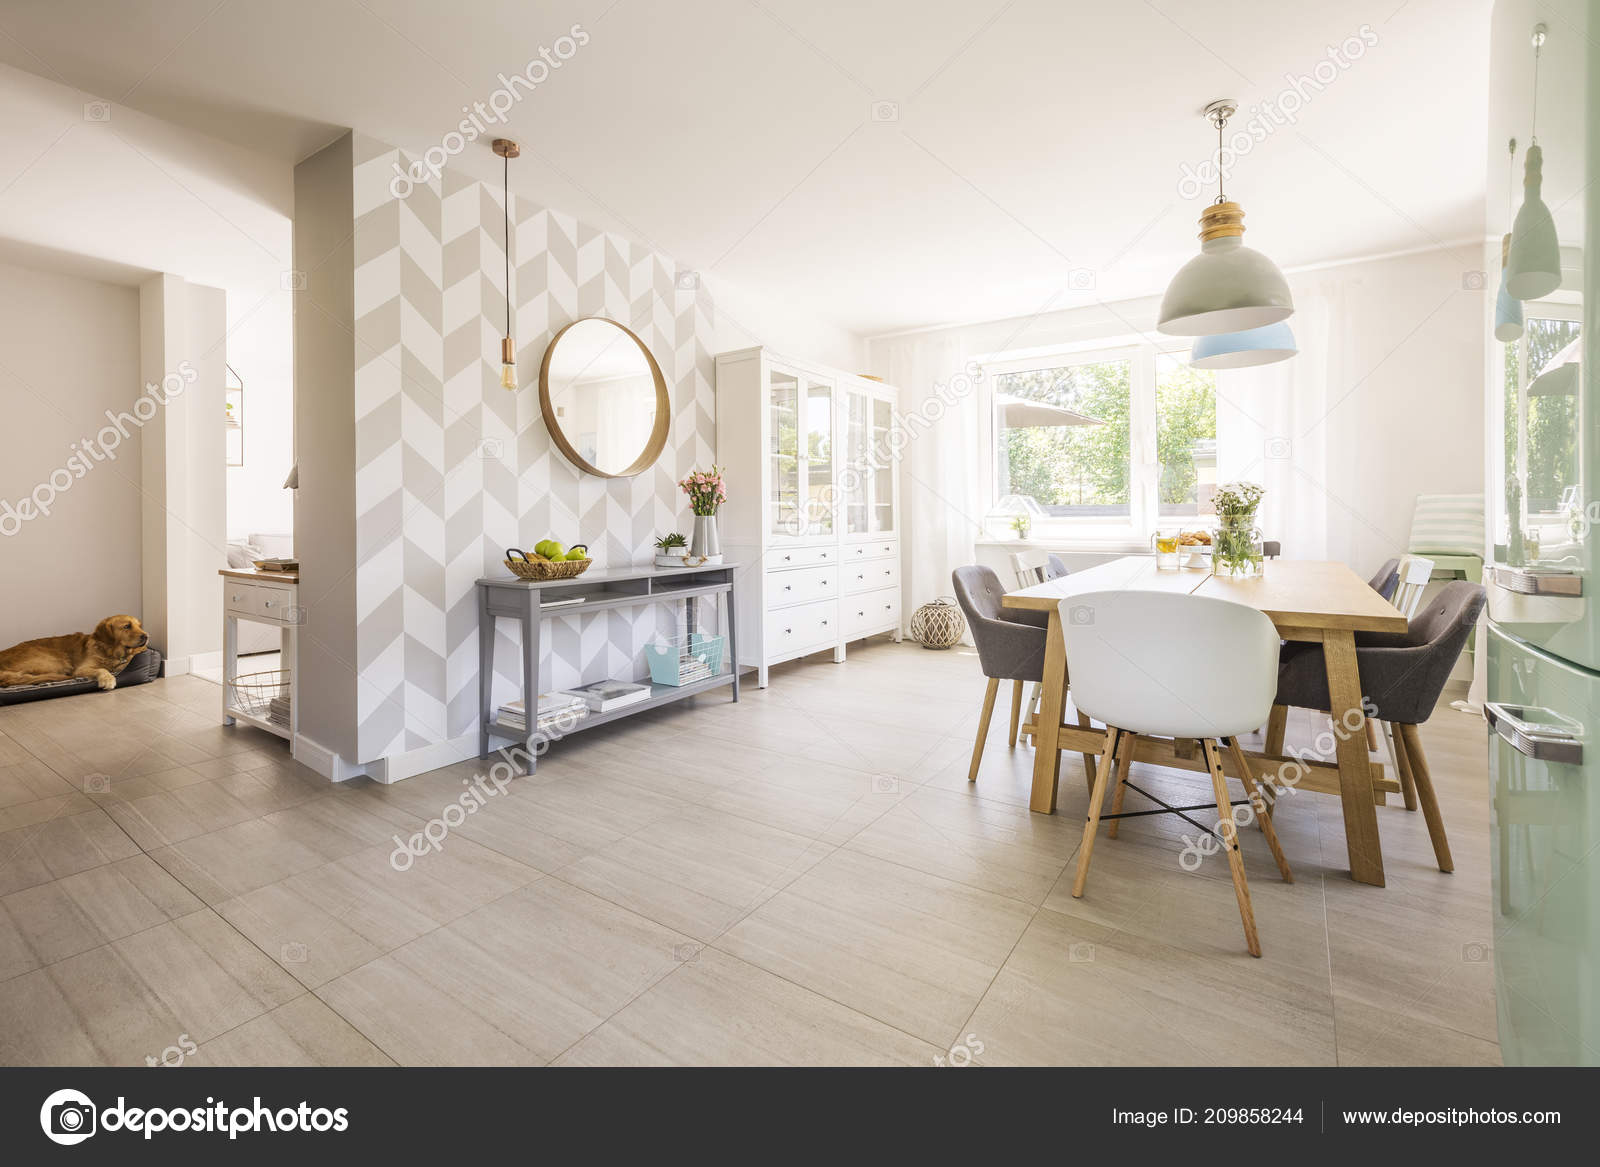 Chairs Dining Table Spacious Apartment Interior Mirror Wall Patterned Wallpaper Stock Photo Image By Photographee Eu 209858244